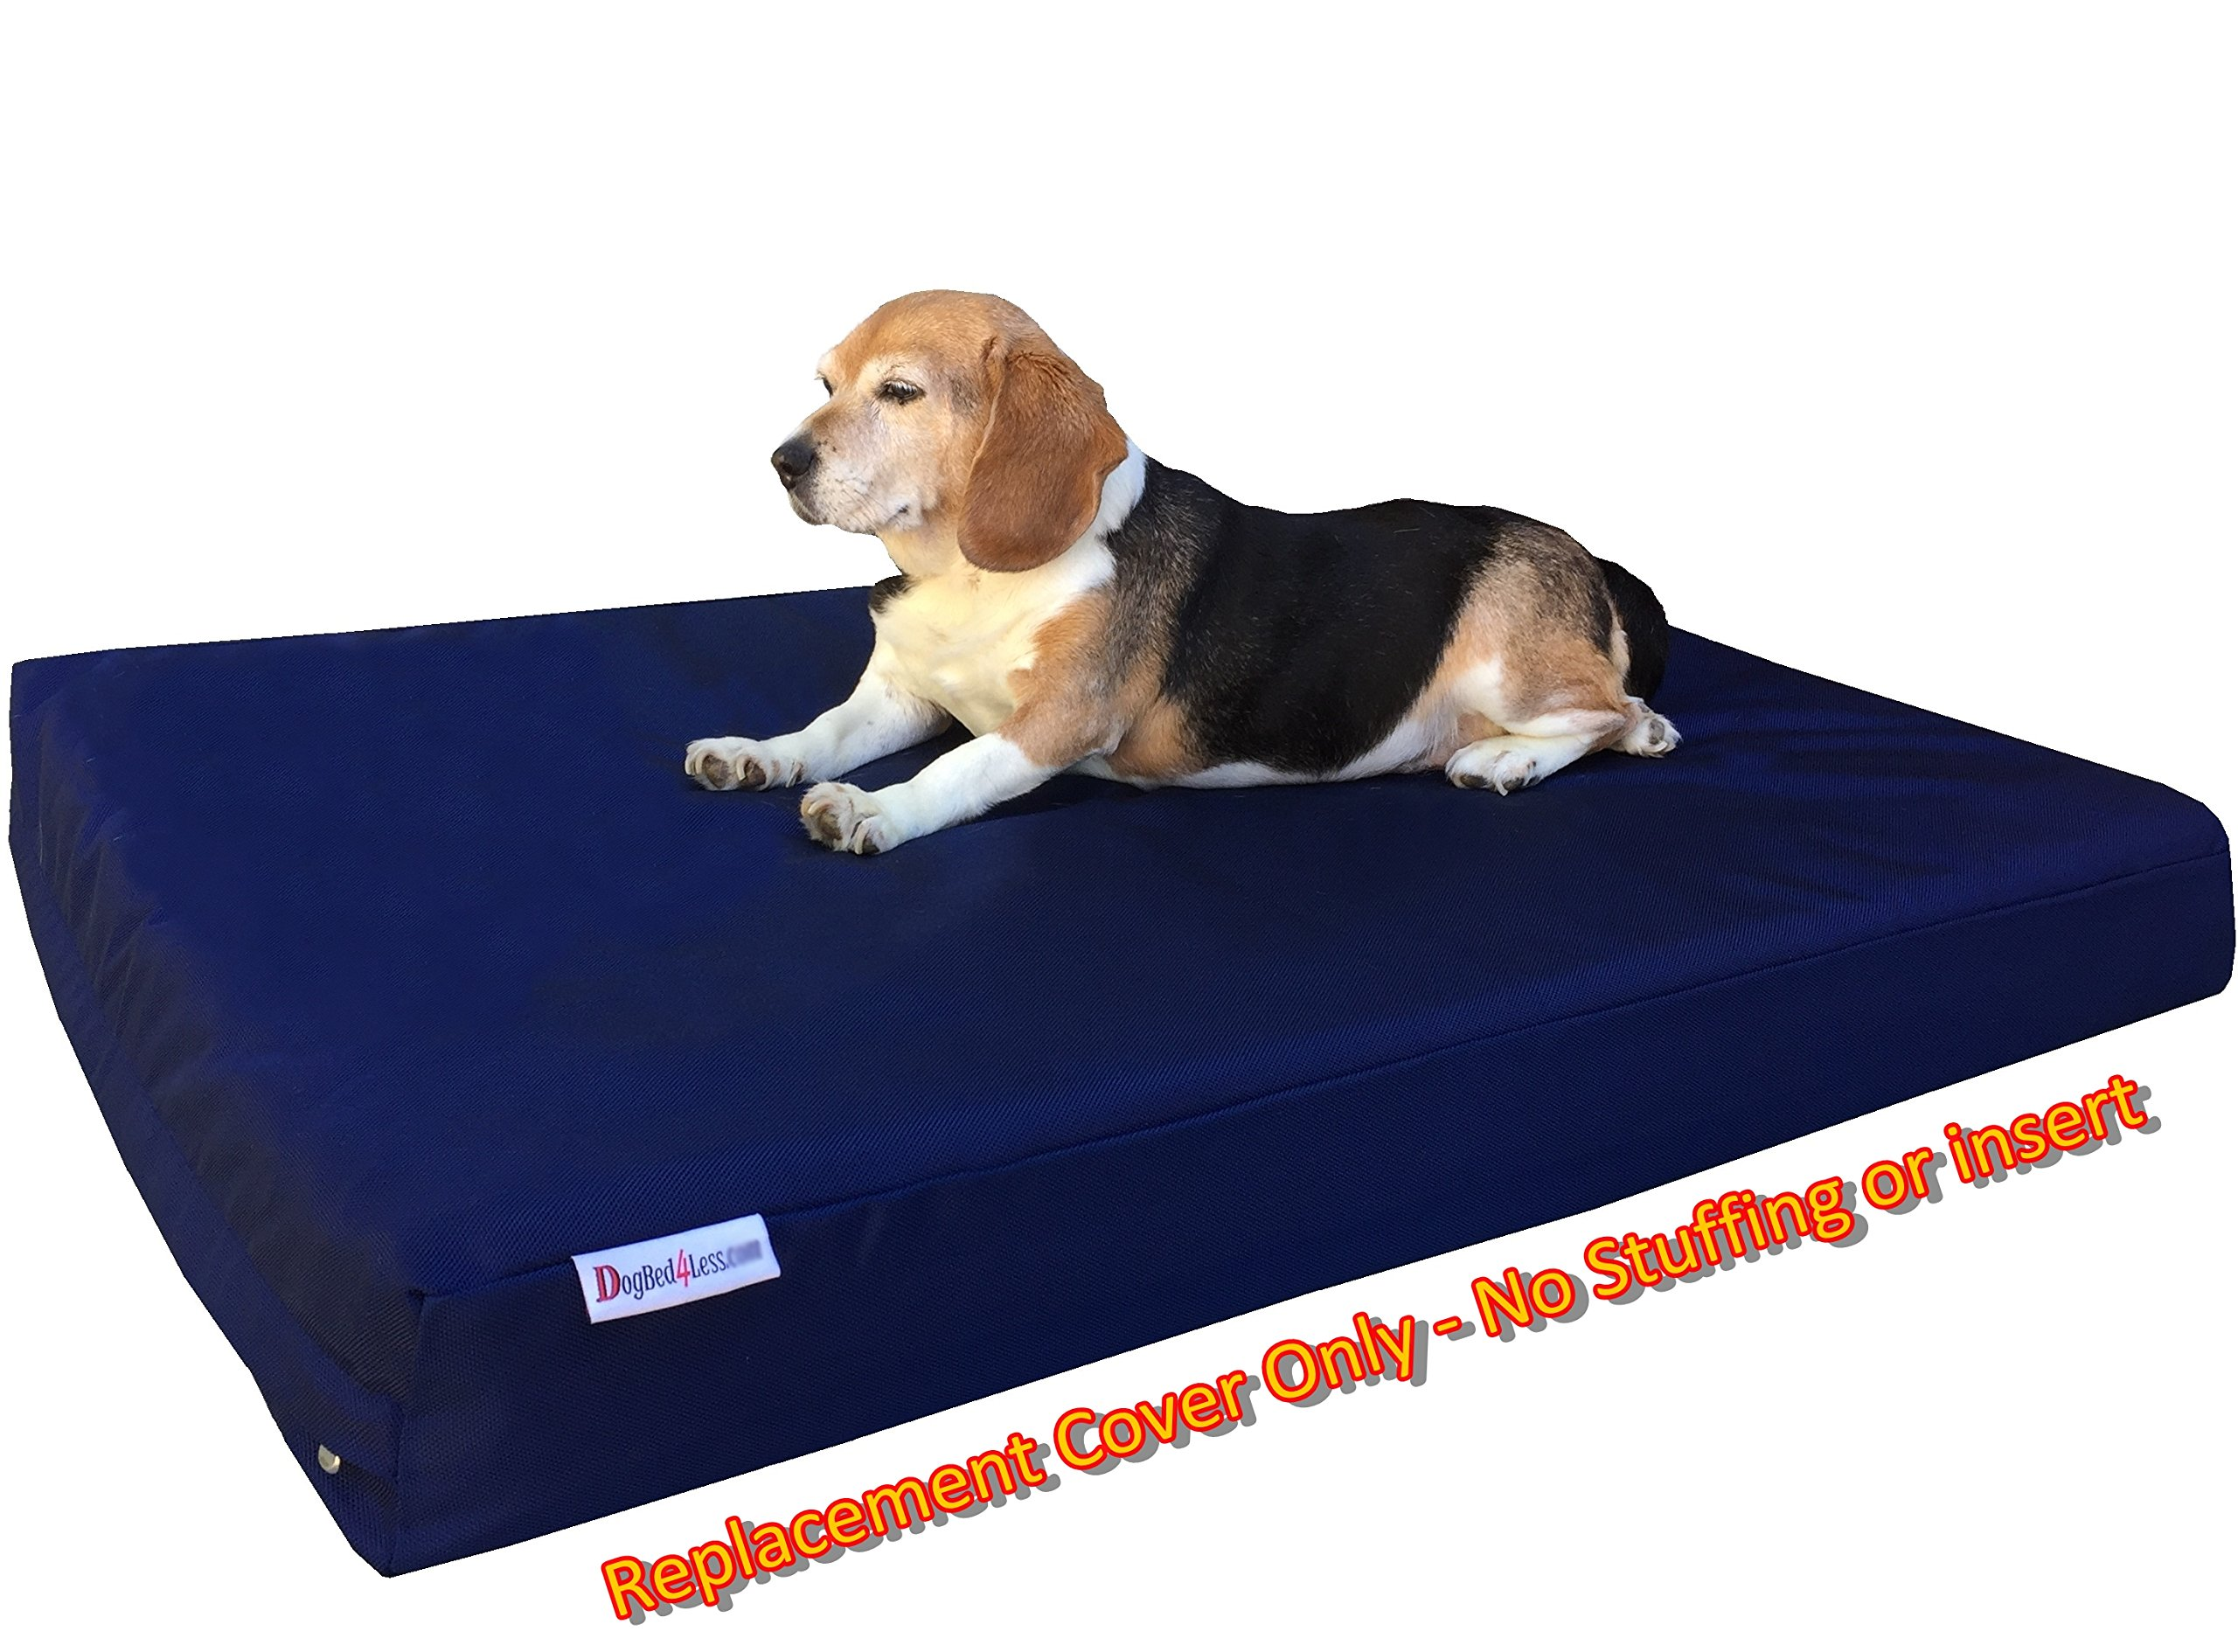 Dogbed4less Small Medium 1680 Ballistic Heavy Duty Dog Pet Bed External Zipper Duvet Cover - Replacement cover only, 35X20X4 Inches, Navy Blue by Dogbed4less (Image #4)